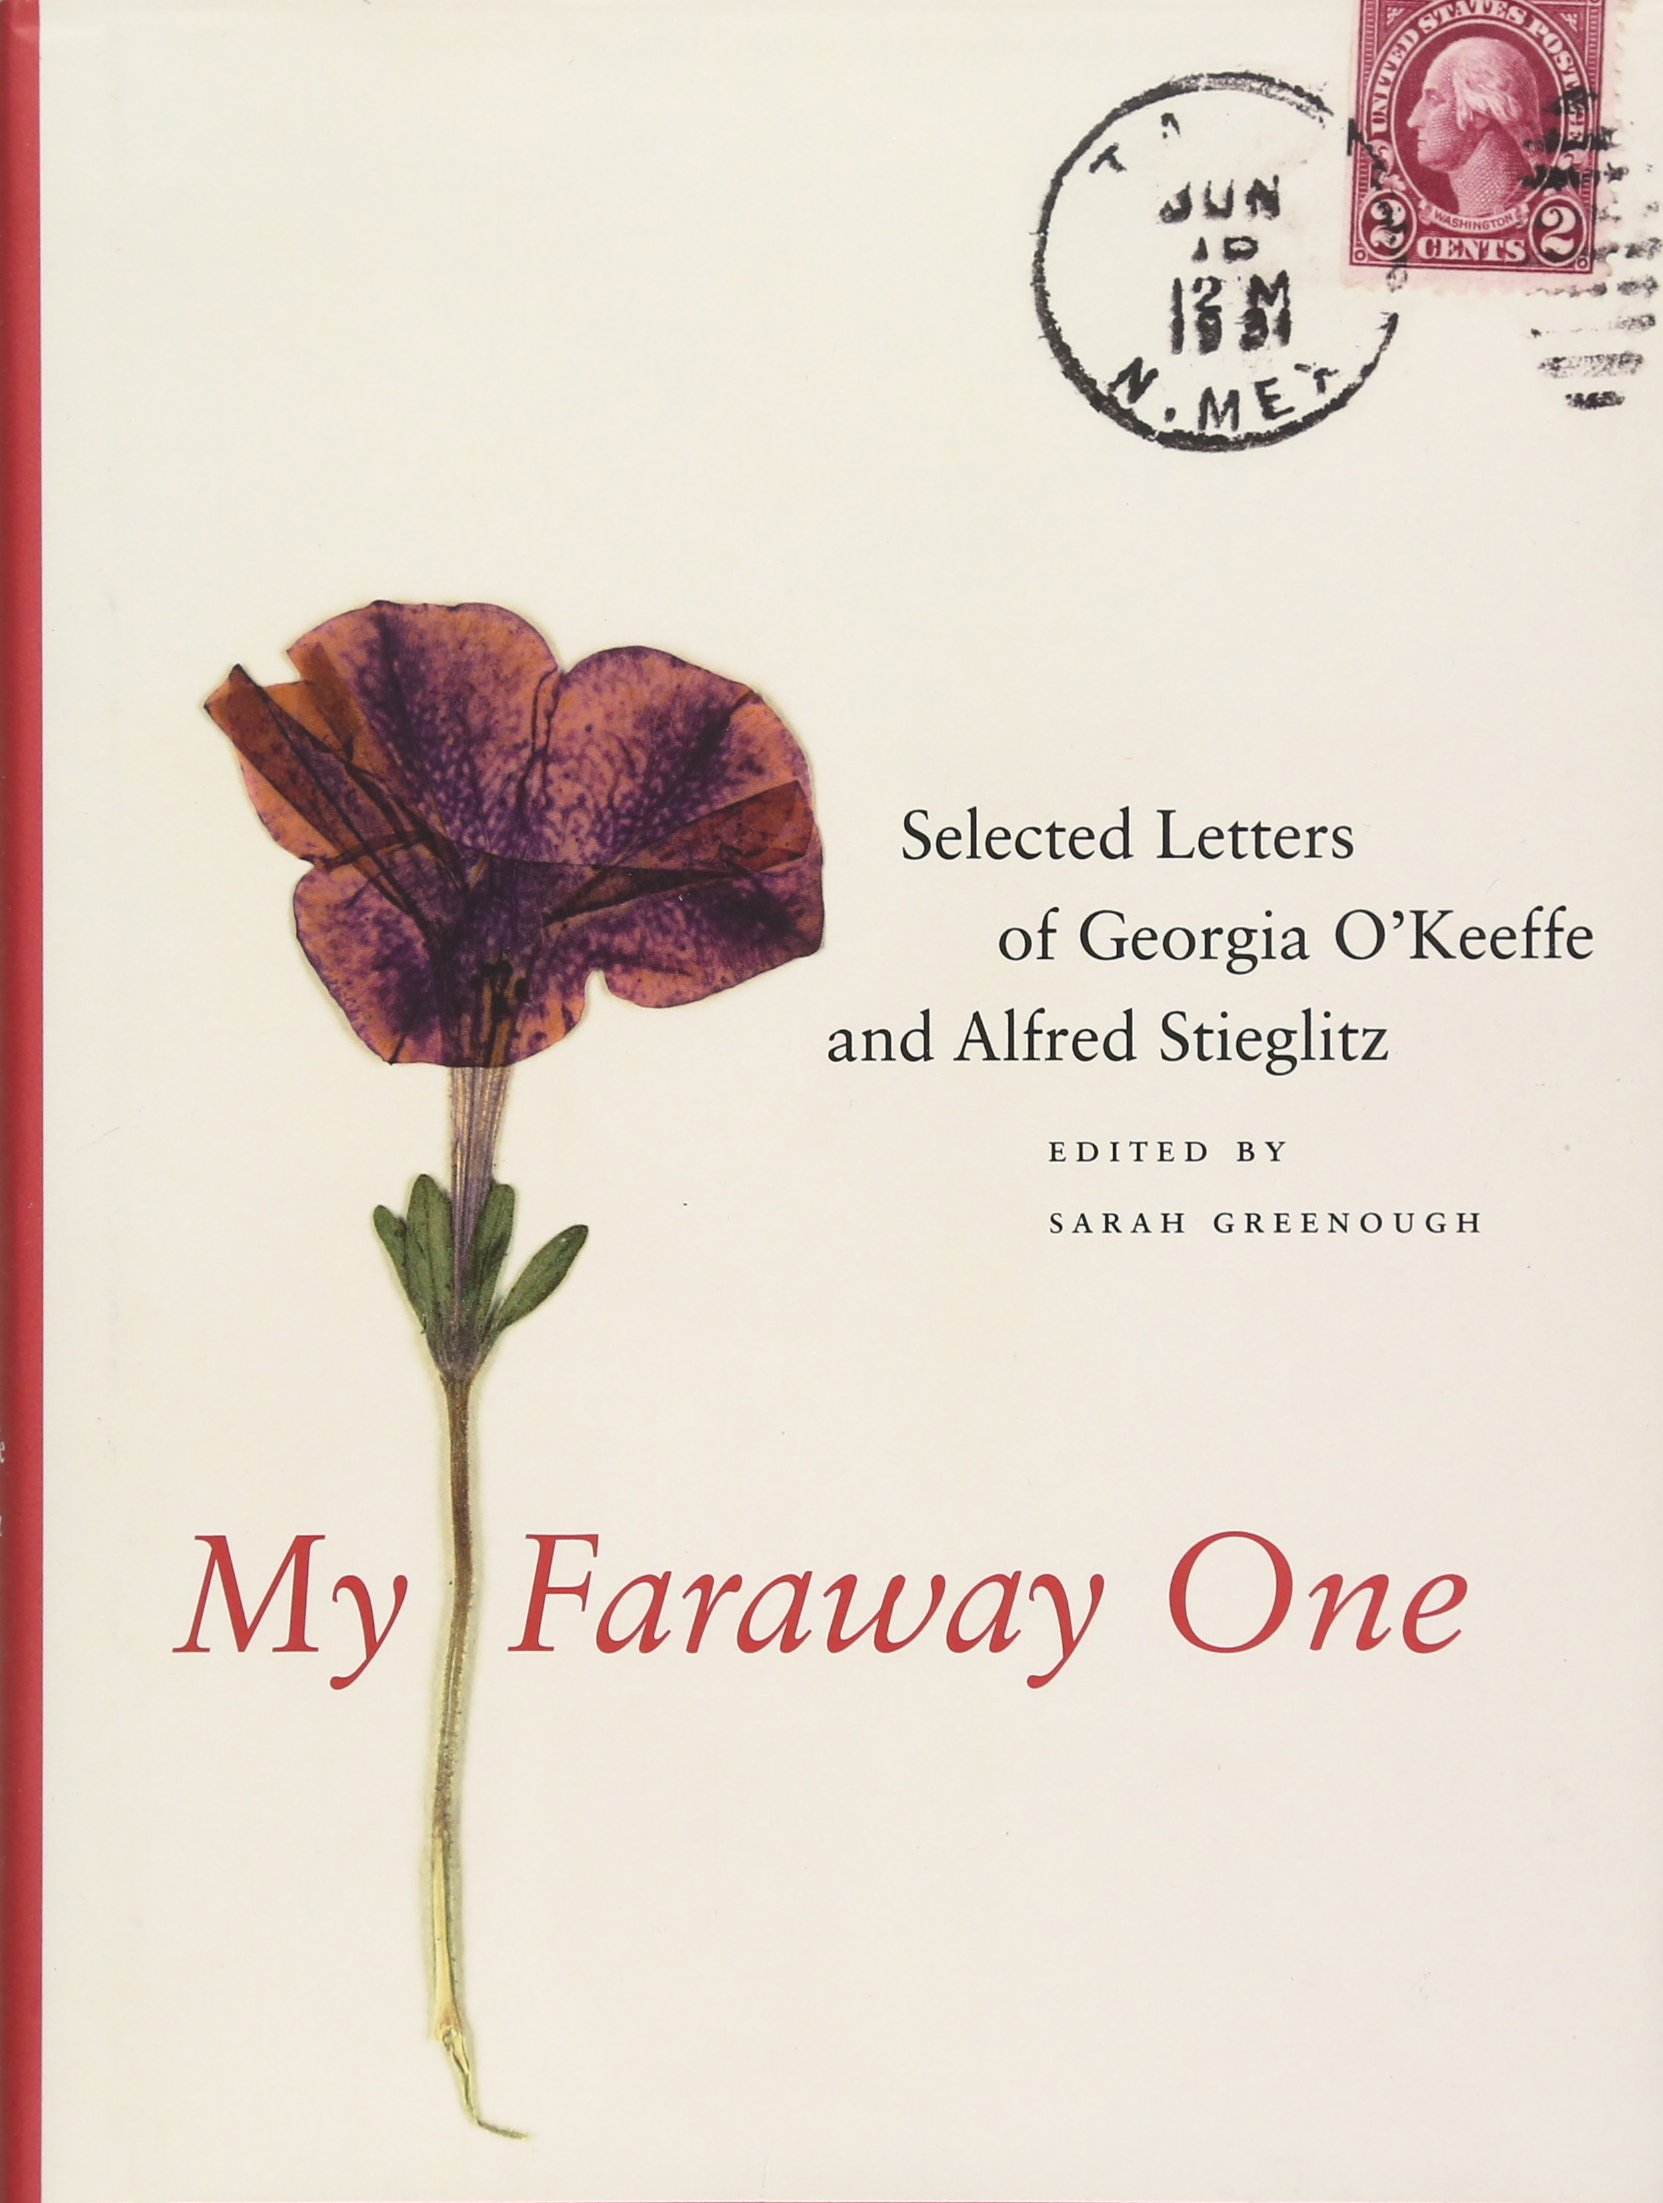 Amazon.com: My Faraway One: Selected Letters of Georgia O'Keeffe and Alfred  Stieglitz: Volume One, 1915-1933 (9780300166309): Sarah Greenough: Books